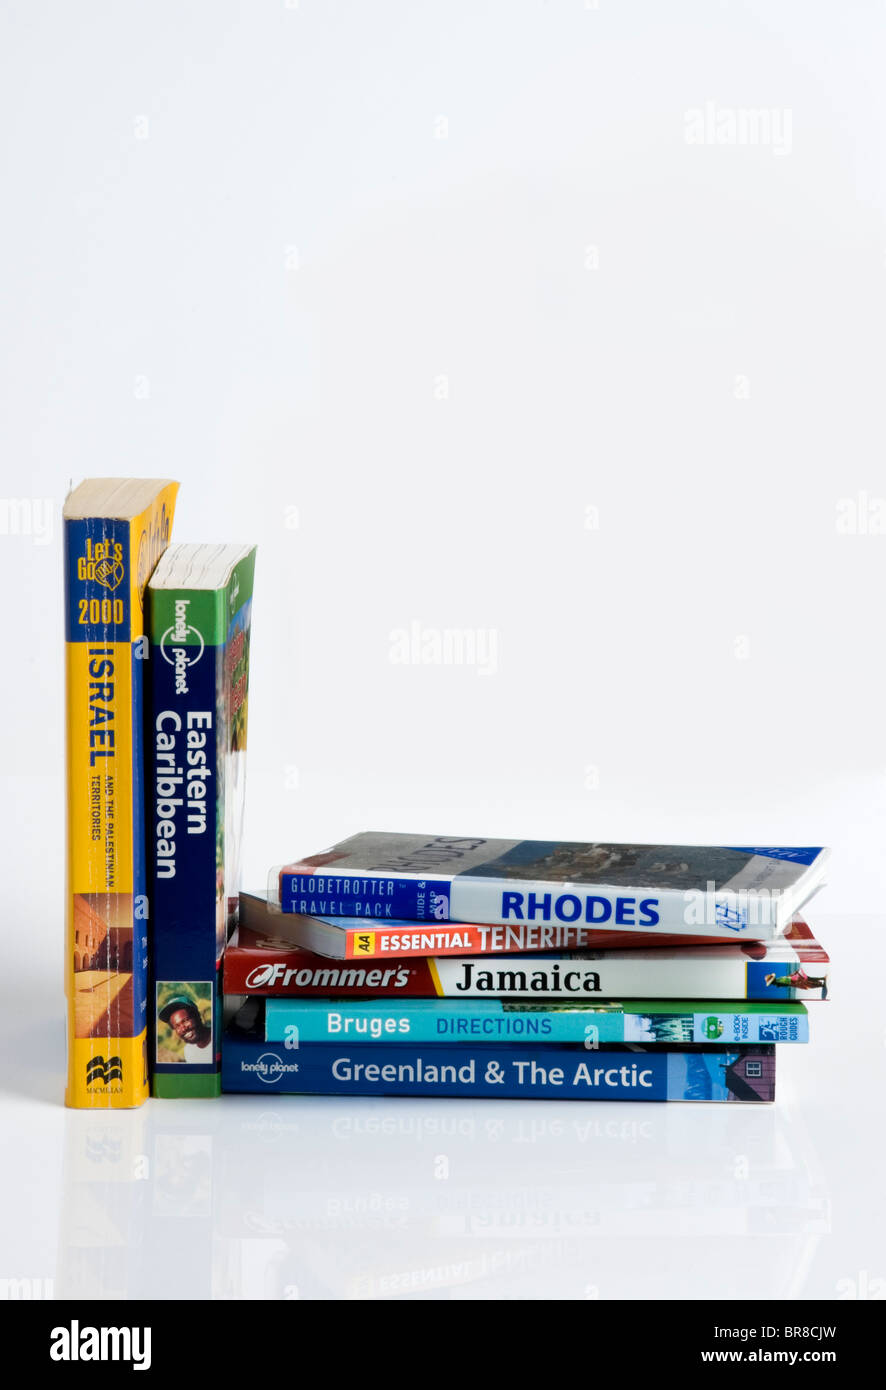 Selection of travel guides. - Stock Image